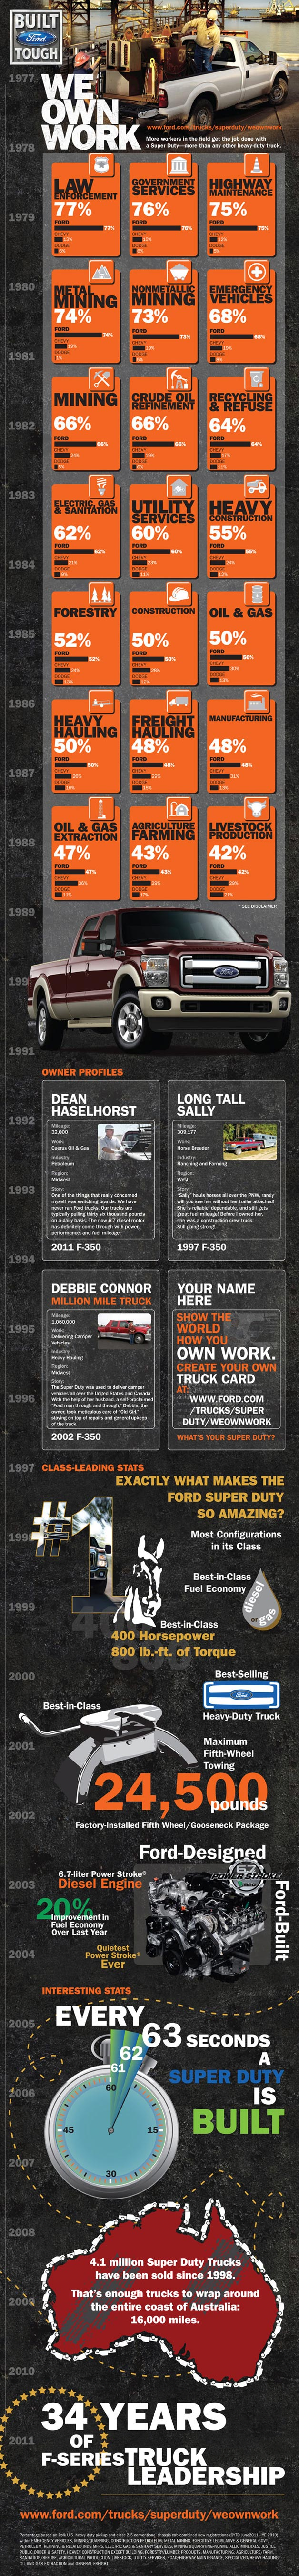 Ford Super Duty Infographic: Trucks at Work